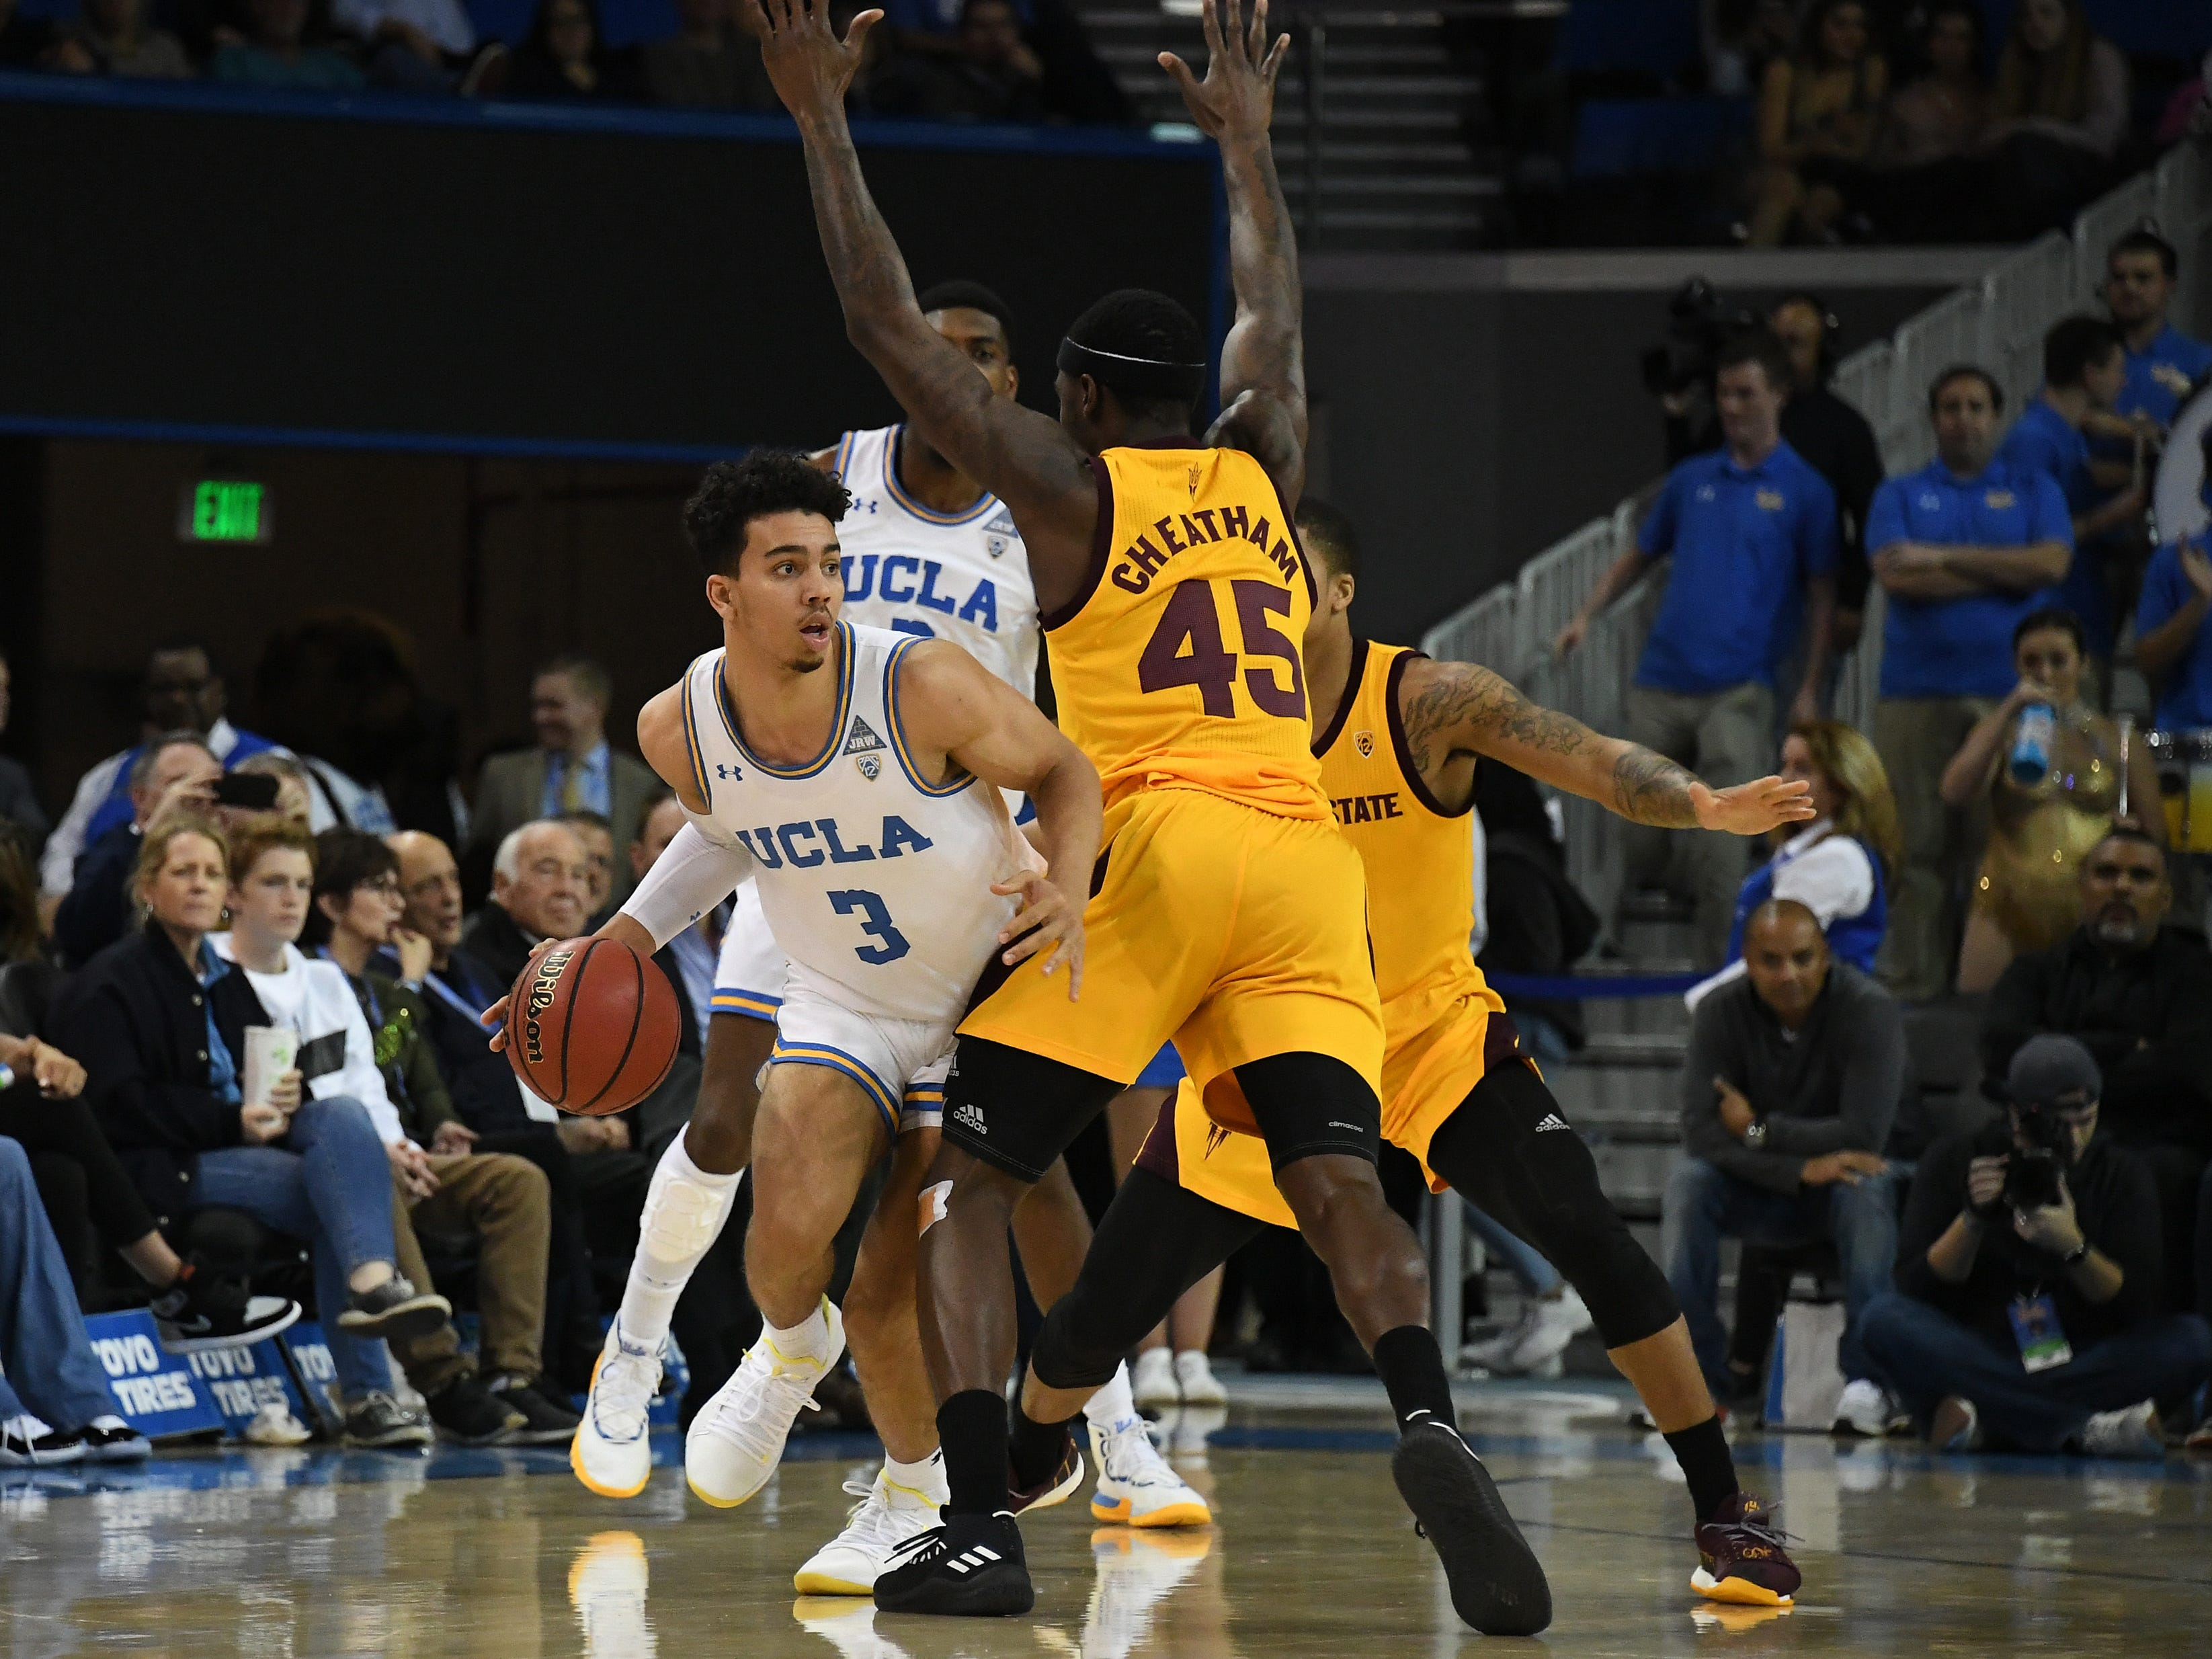 Jan 24, 2019; Los Angeles, CA, USA; UCLA Bruins guard Jules Bernard (3) tries to dribble around Arizona State Sun Devils forward Zylan Cheatham (45) during the first half at Pauley Pavilion. Mandatory Credit: Richard Mackson-USA TODAY Sports